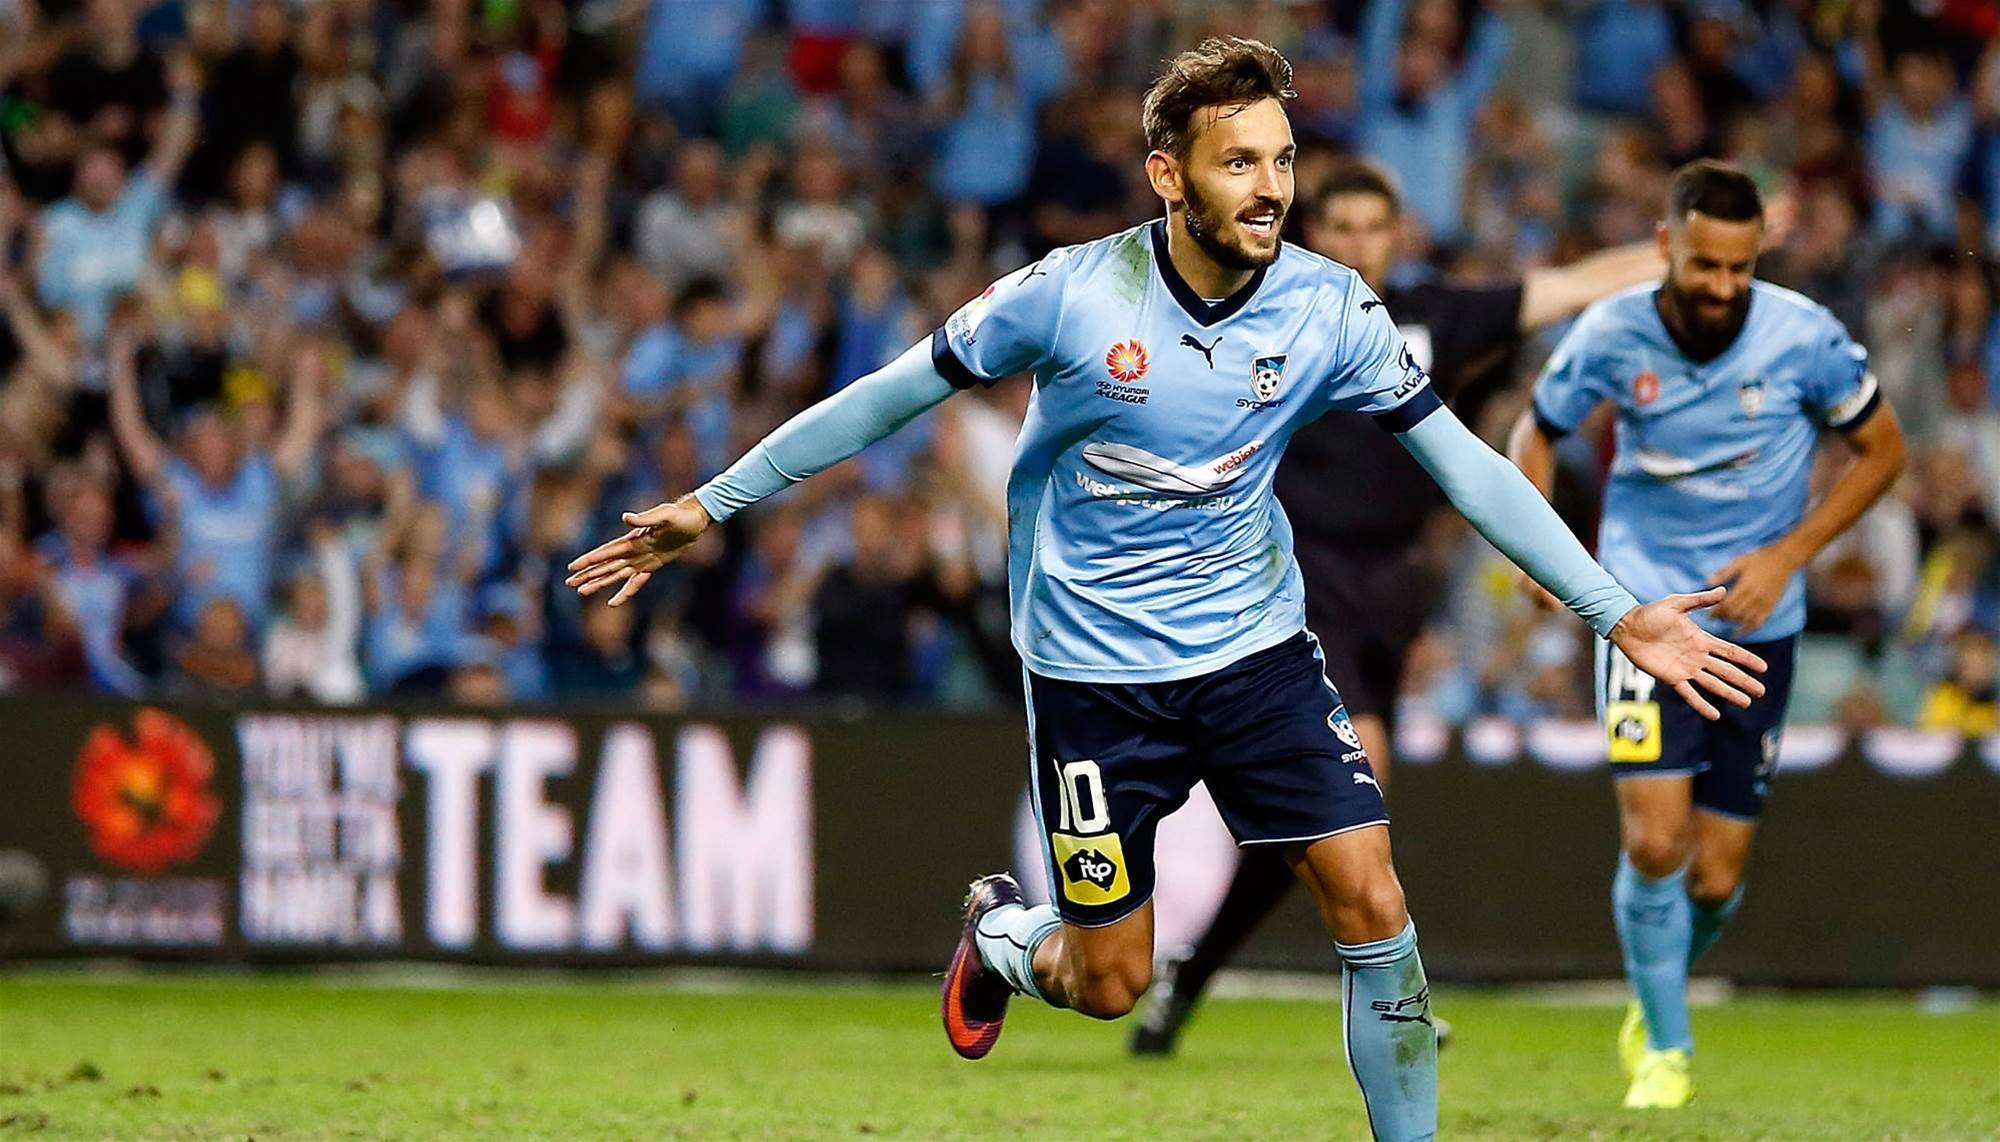 Ninkovic: I'd play the Grand Final on one leg!